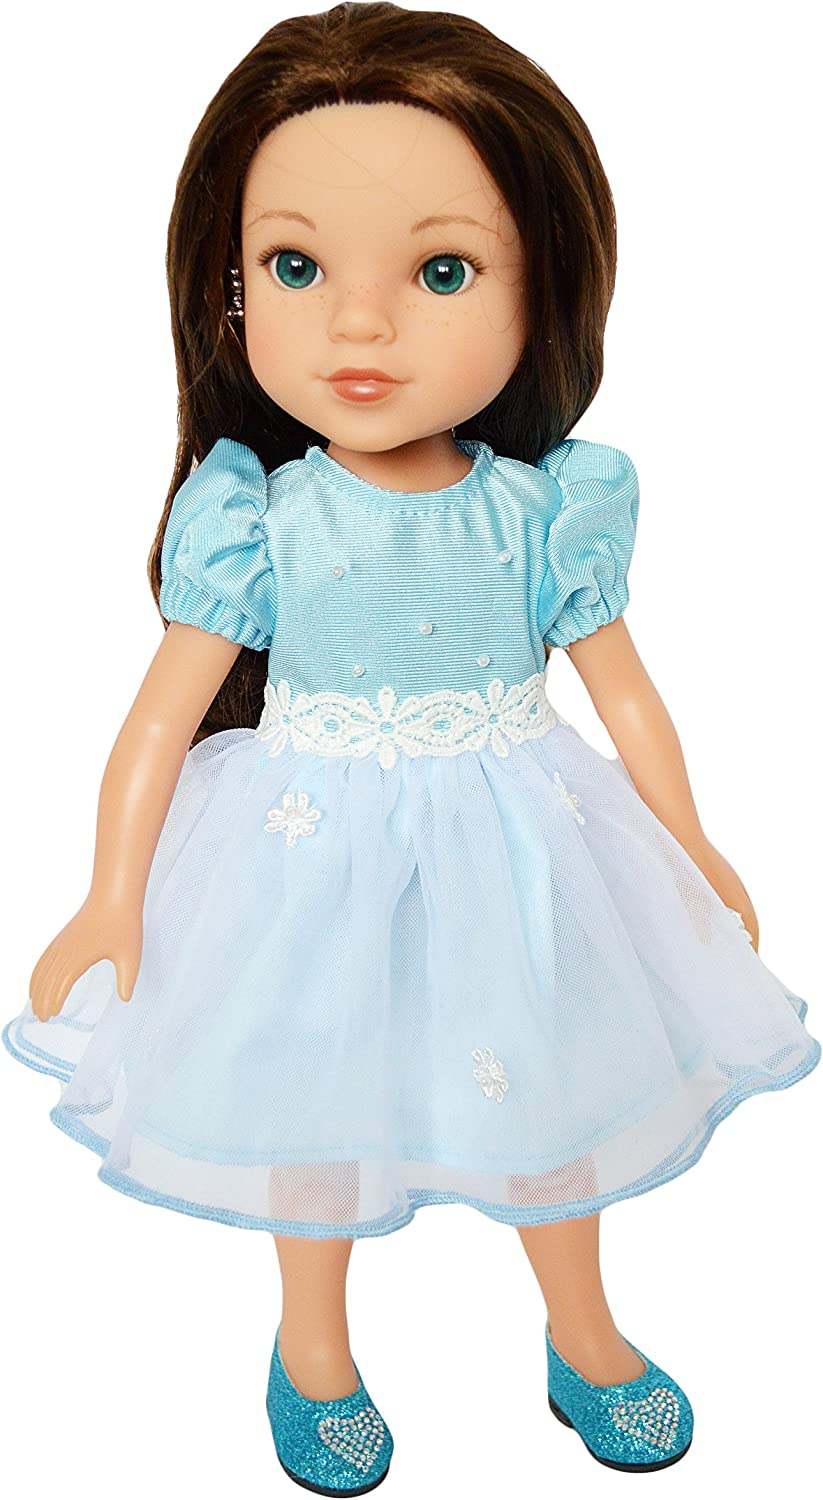 Blue Bunny Nightgown Fits 14.5 Inch American Girl Wellie Wishers Doll Clothes